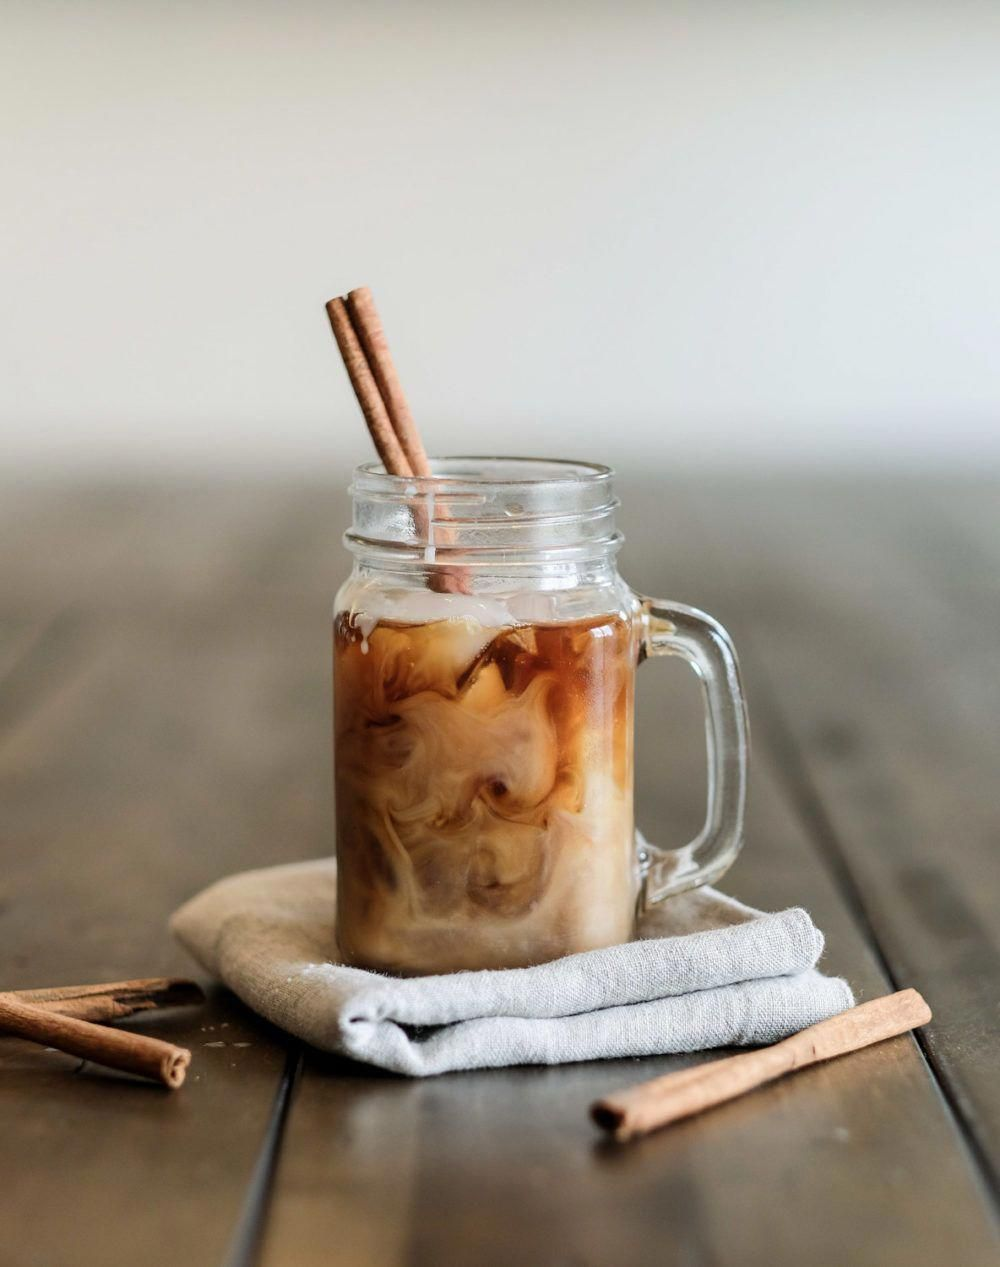 Follow this cold brew coffee recipe! It's easy and it makes the best iced coffee drinks for summer! Also included: How to make flavored drinks with homemade cinnamon dolce coffee syrup! Use your favorite coffee beans to make this DIY cold brew.